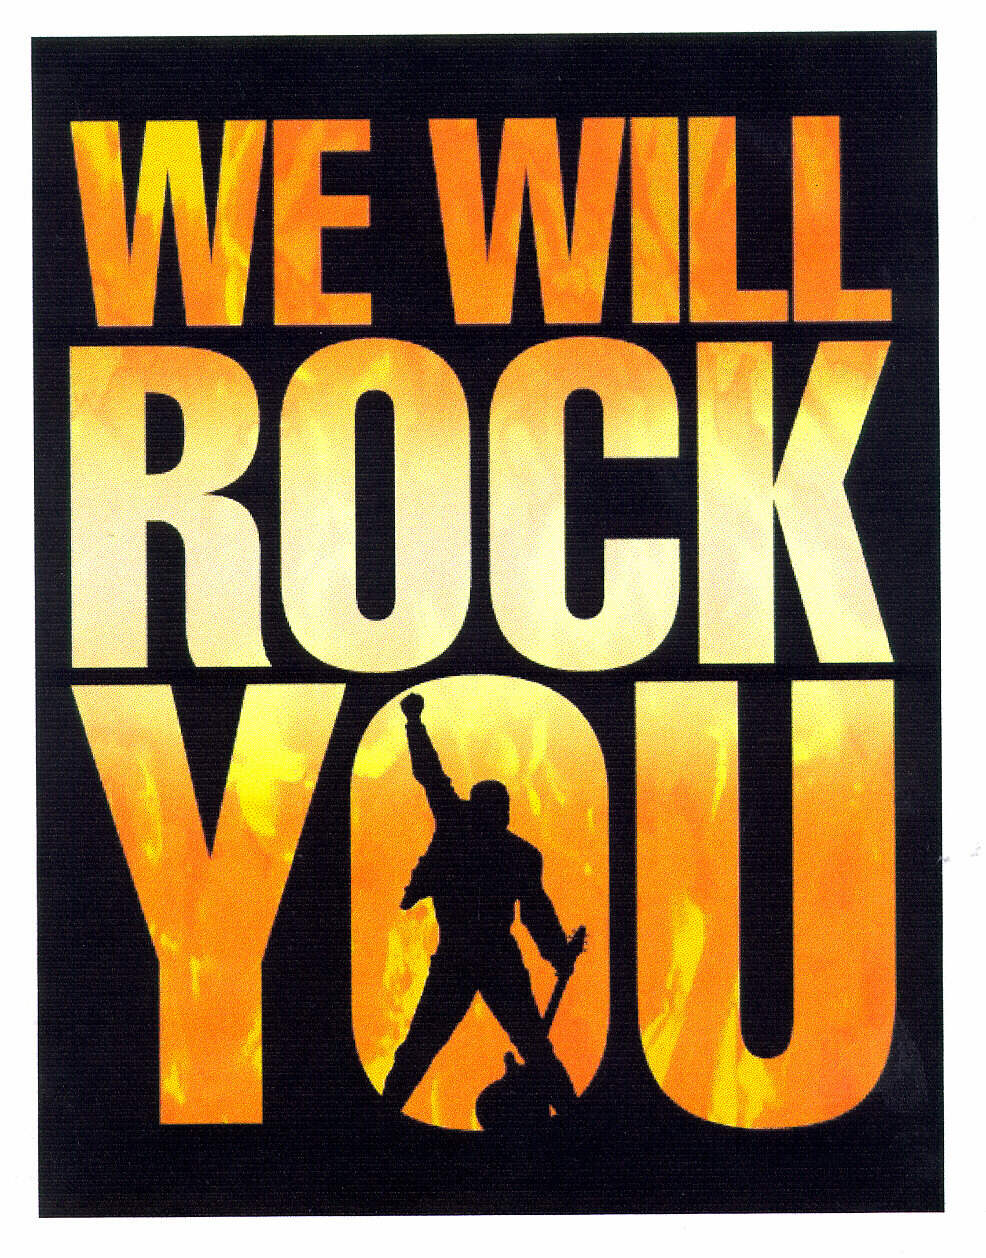 Trademark Information For We Will Rock You From Ctm   By Markify